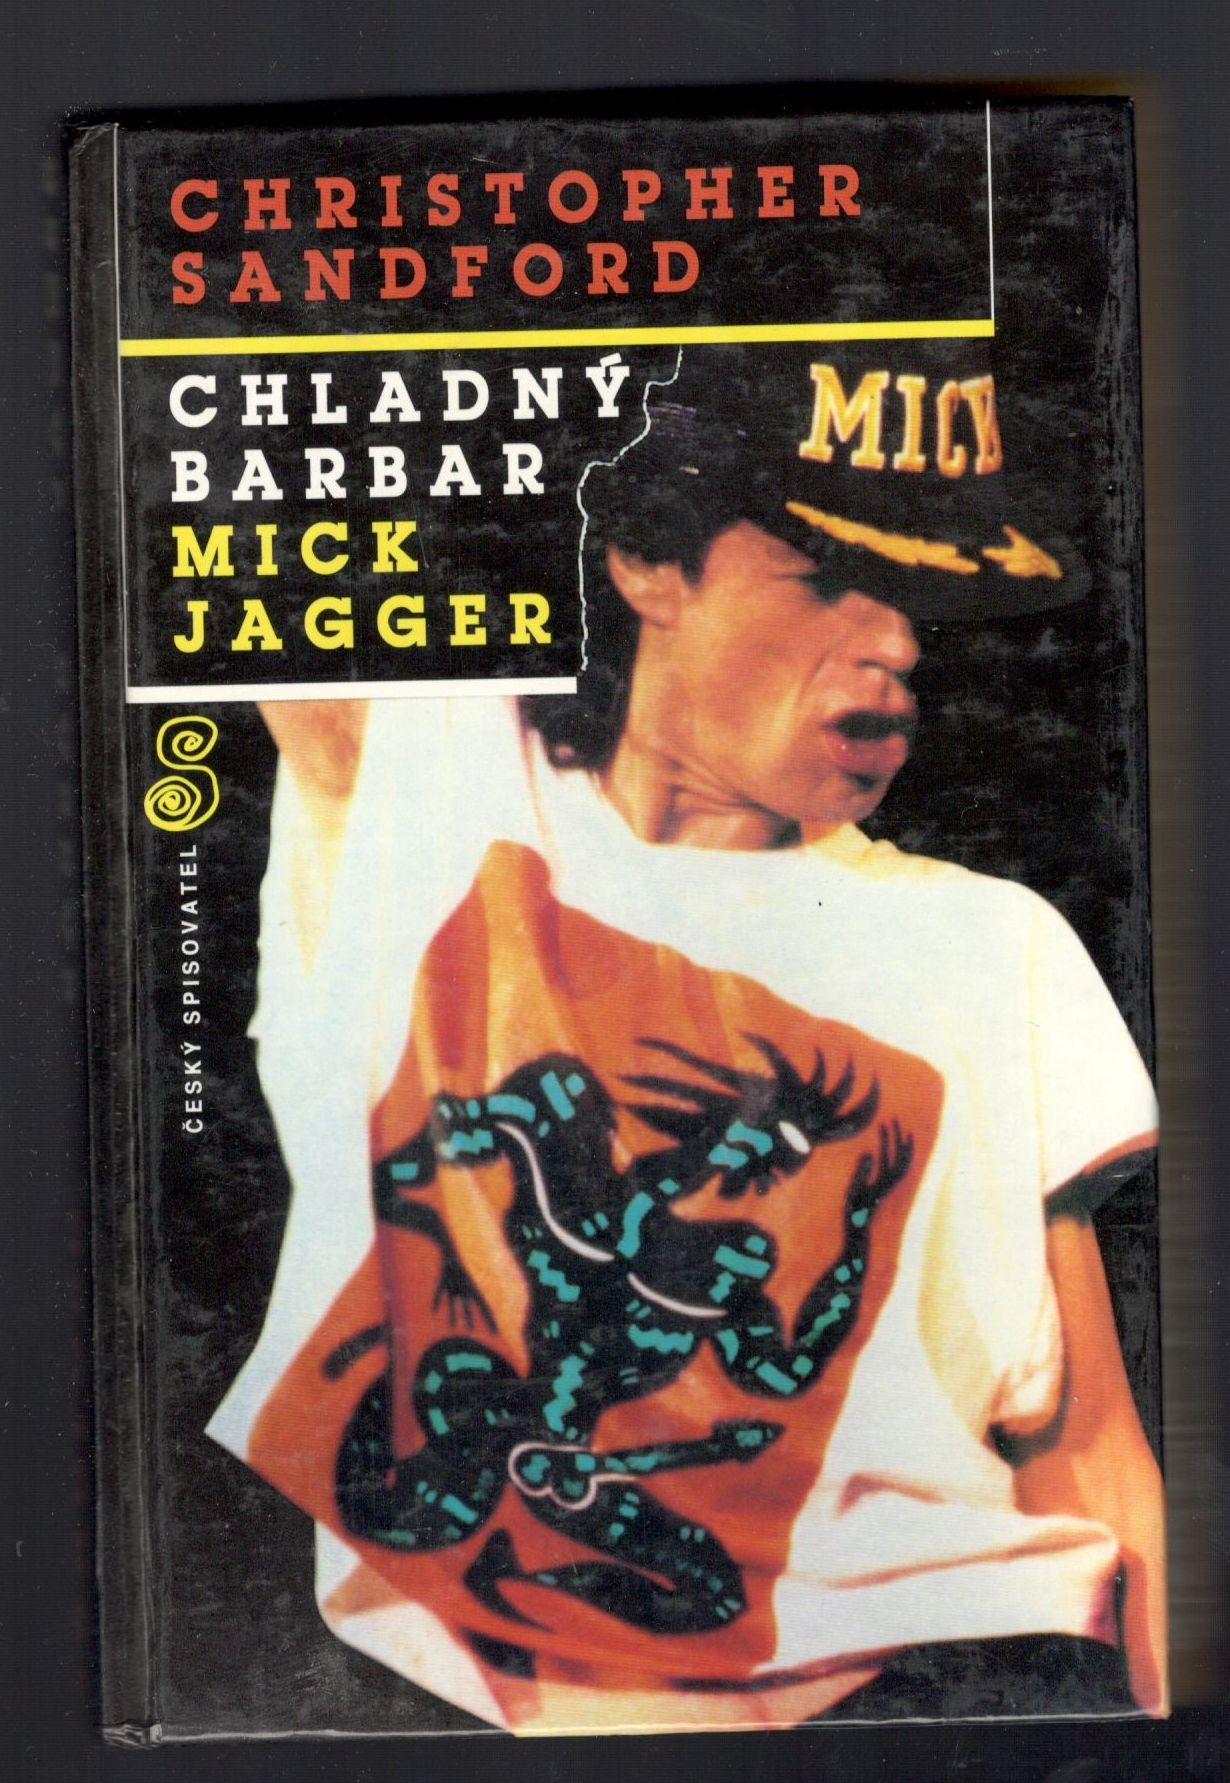 Chladný barbar Mick Jagger - Christopher Sandford